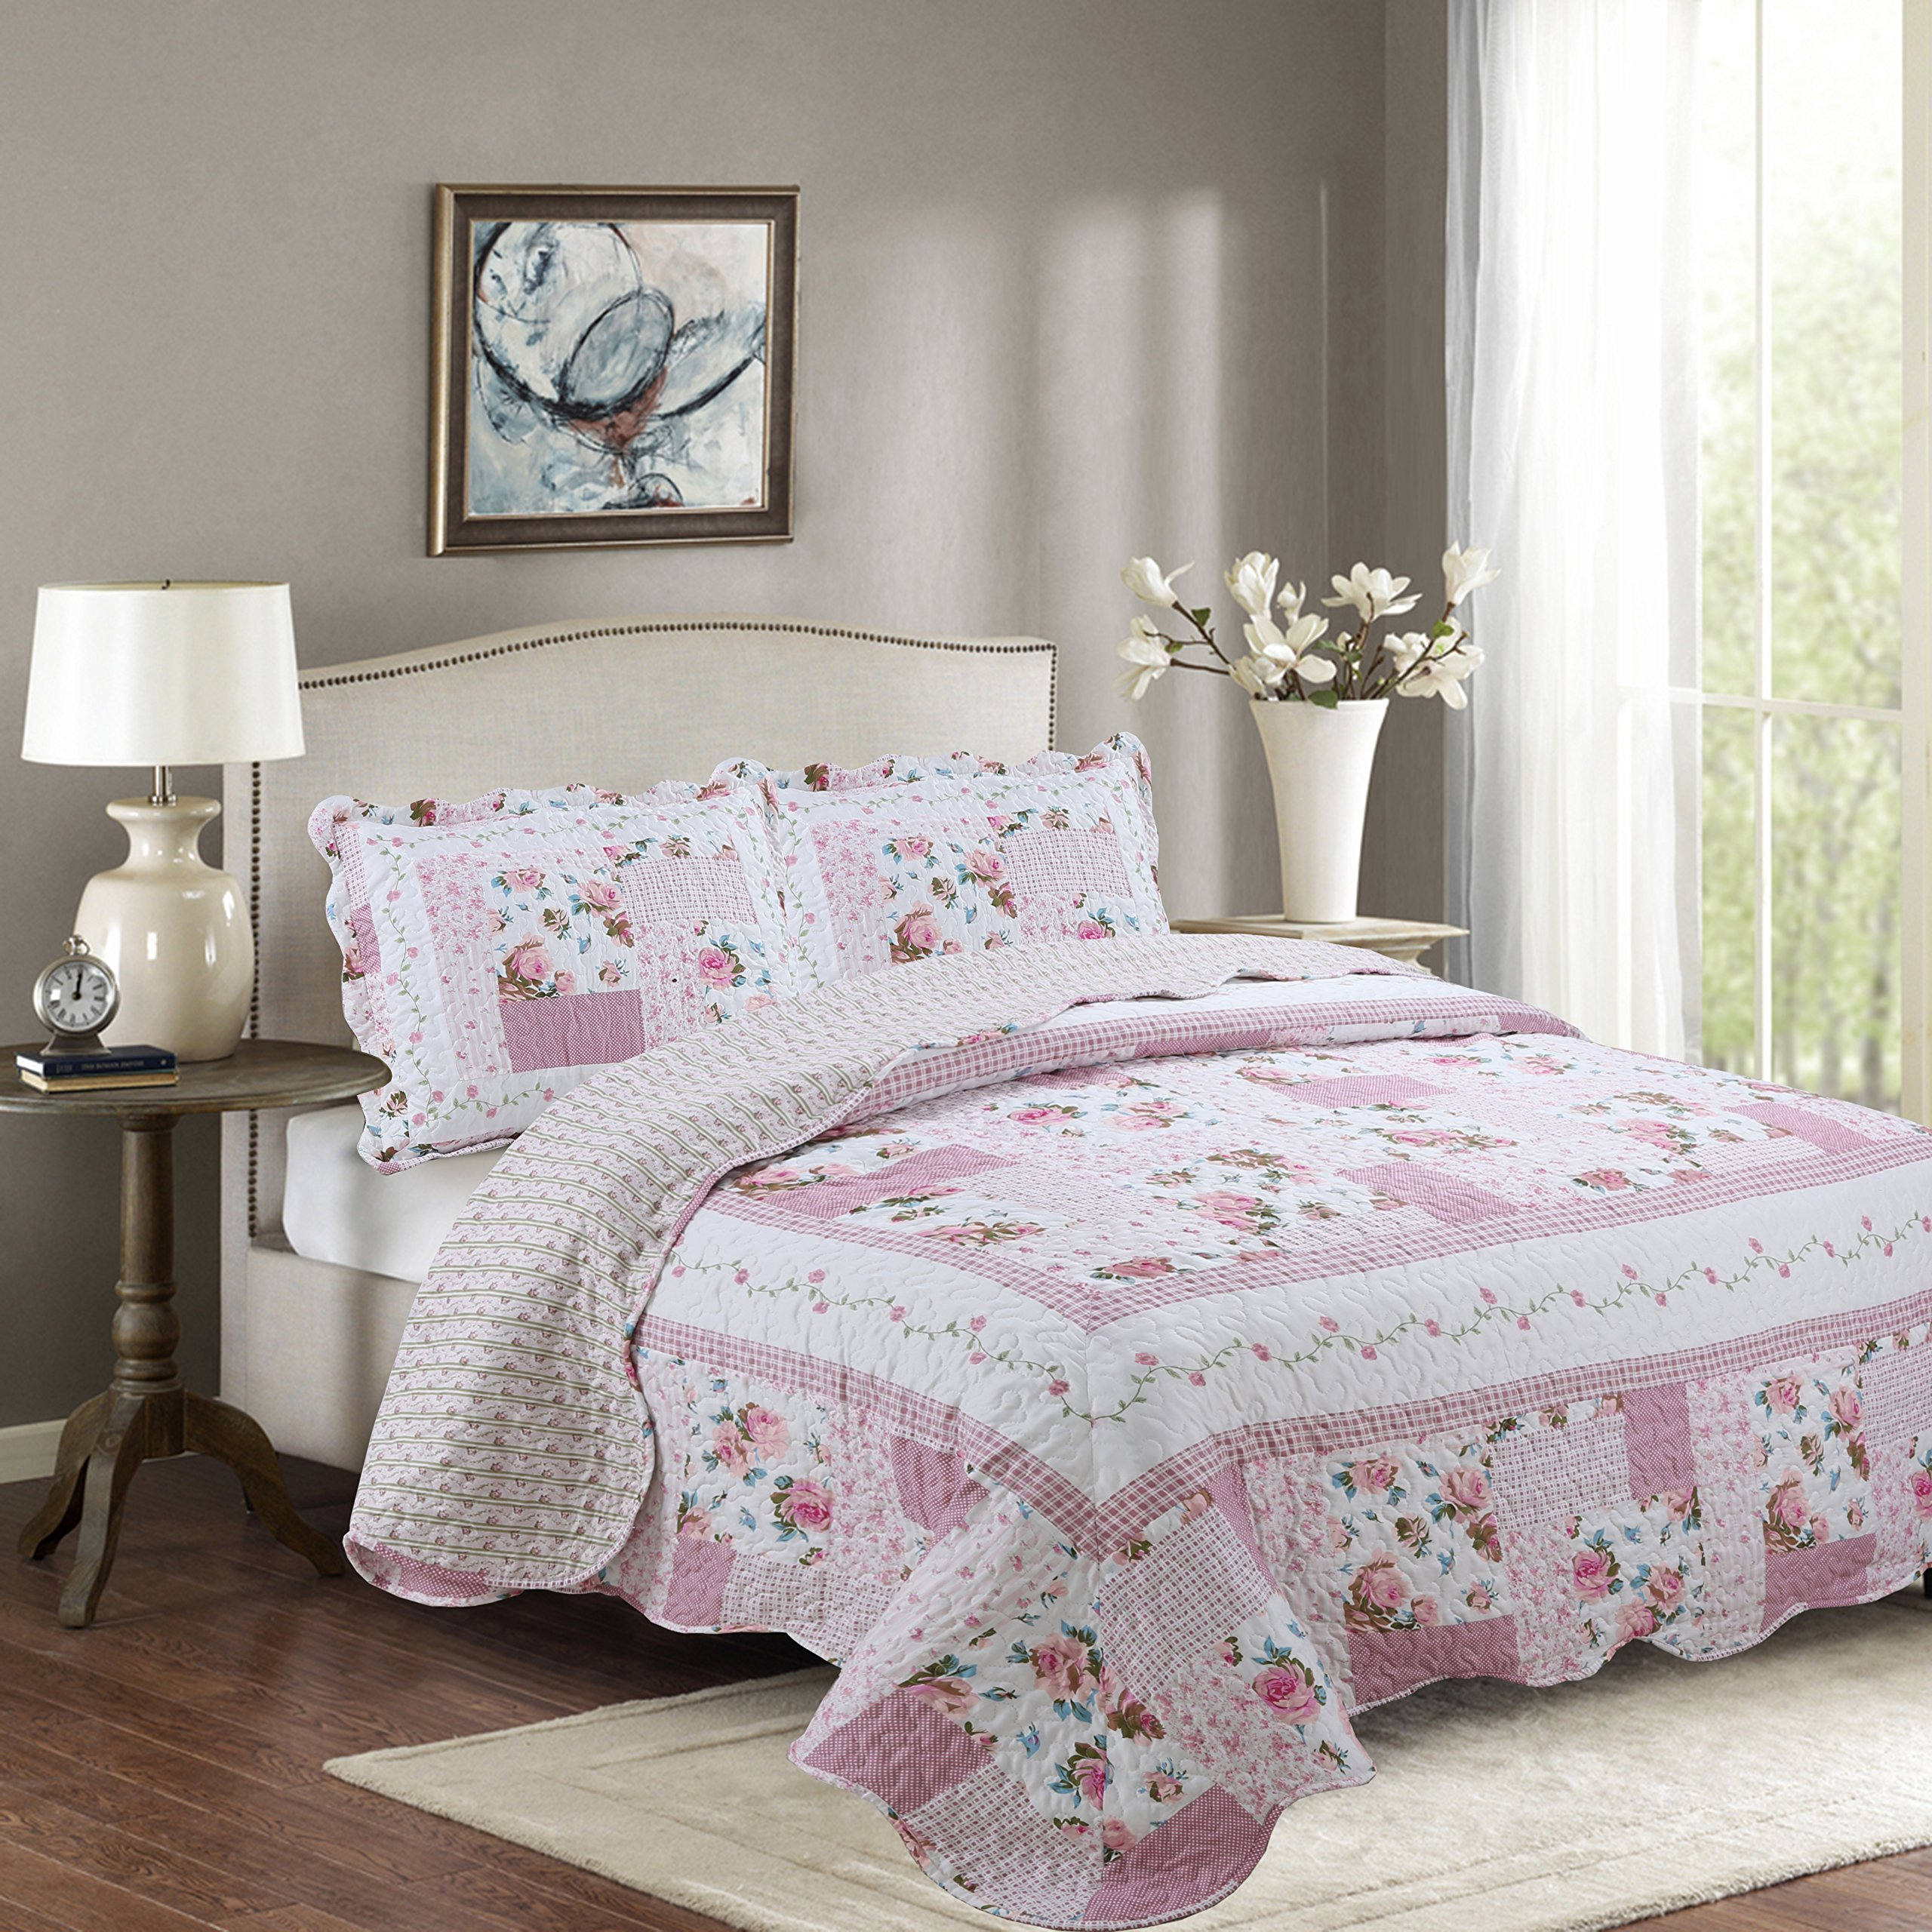 Fancy Collection 2pc Twin/Twin Extra Long Bedspread Bed Cover Floral White Pink Green Reversible New # Melody